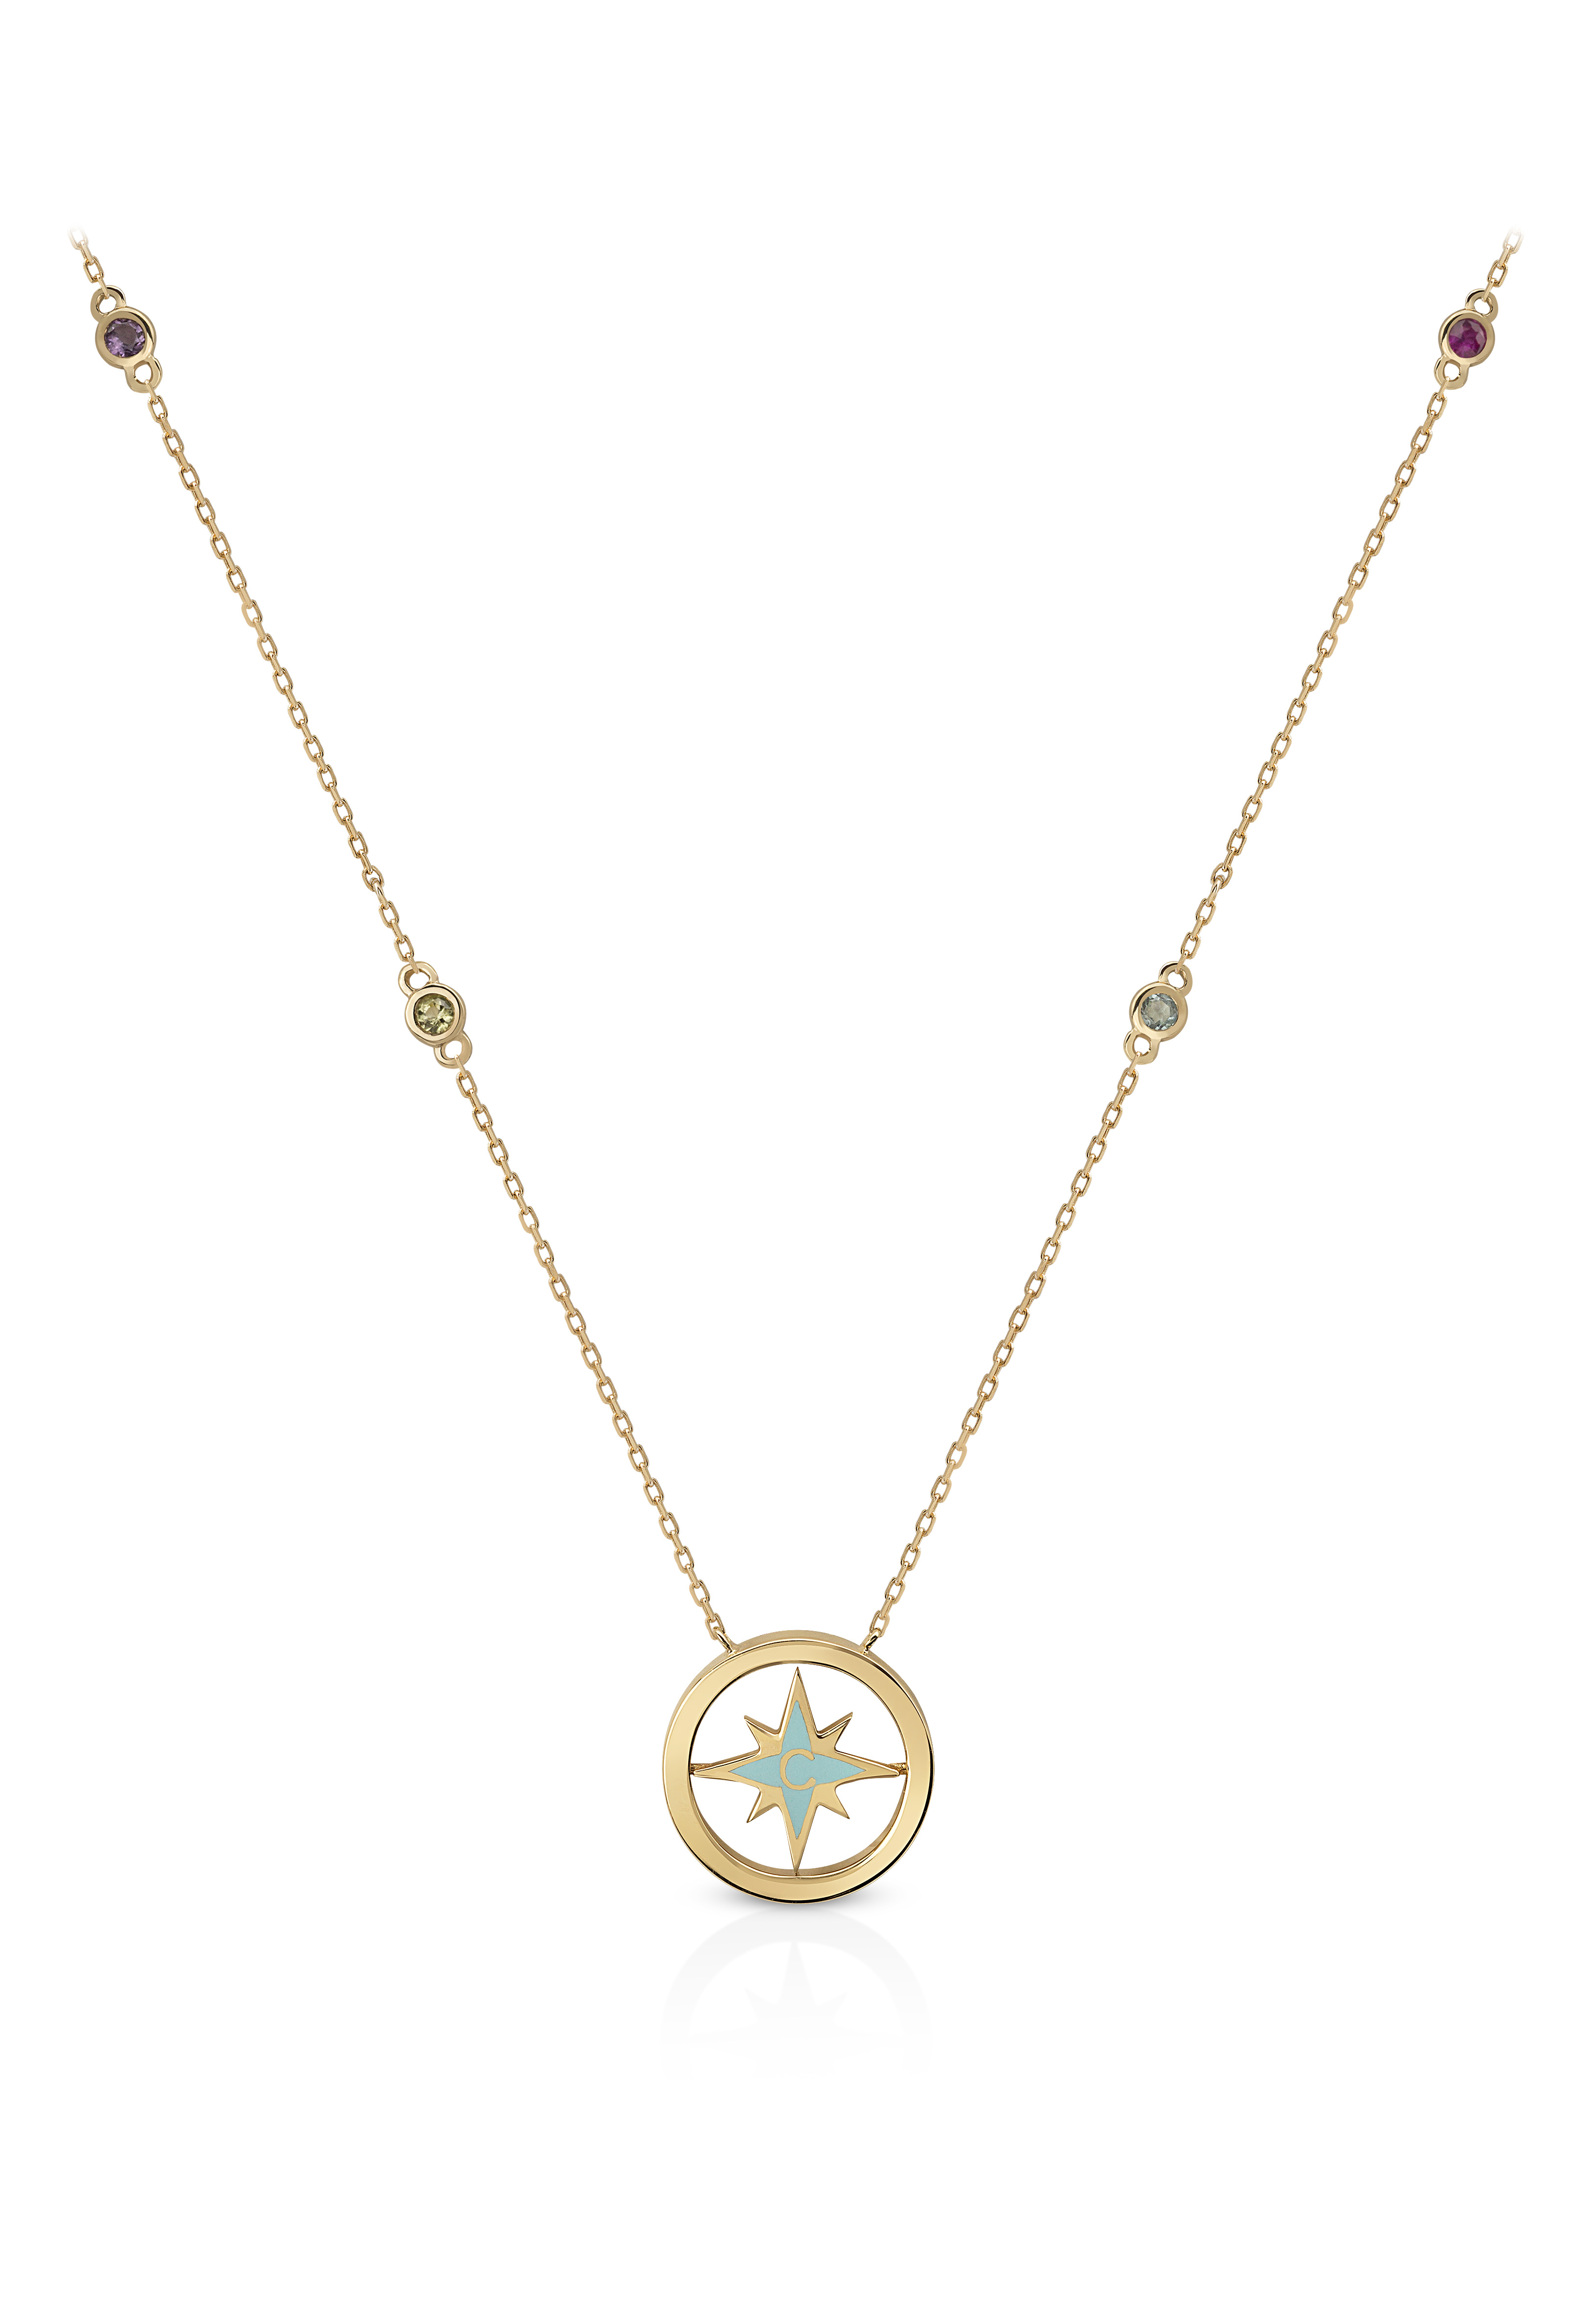 Nova Rainbow Necklace- Multi-Stone,18K Yellow Gold by Aveen on curated-crowd.com